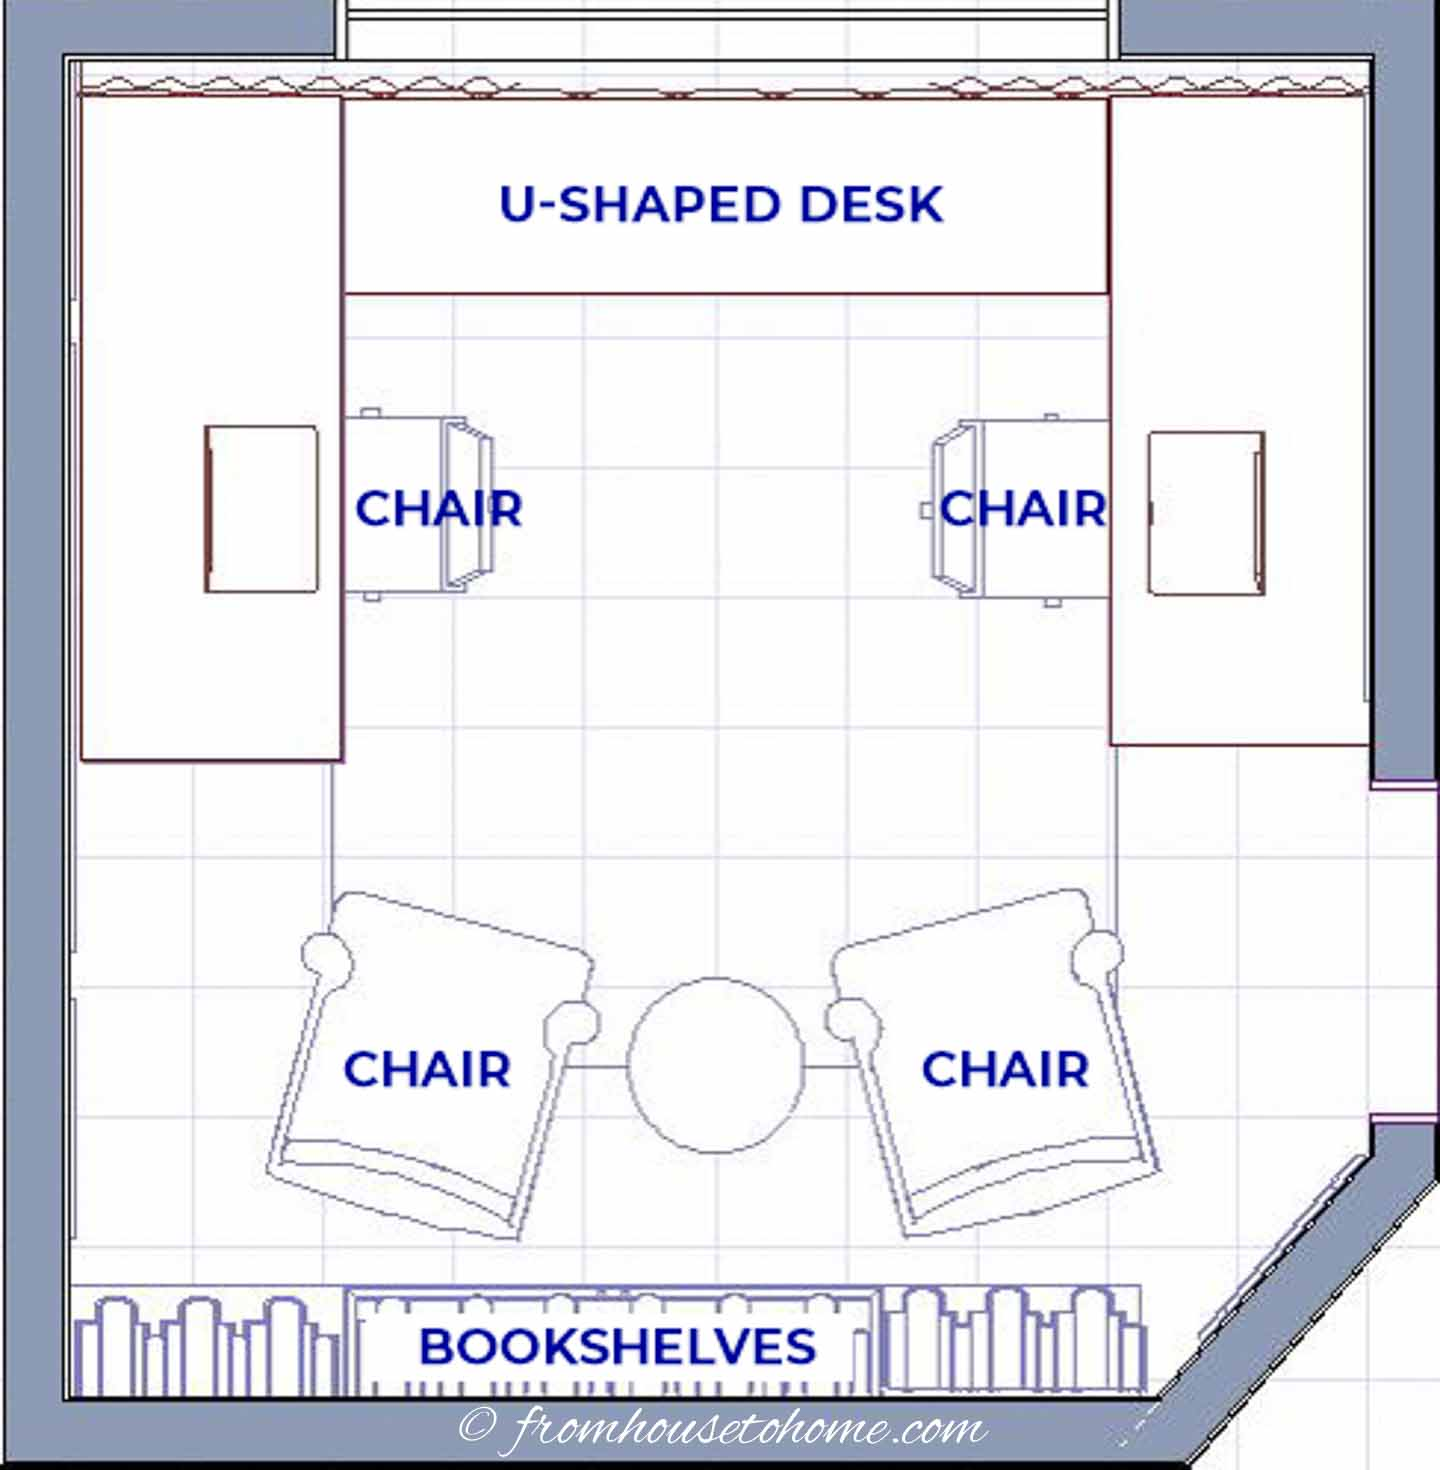 U-shaped desk with two work spaces